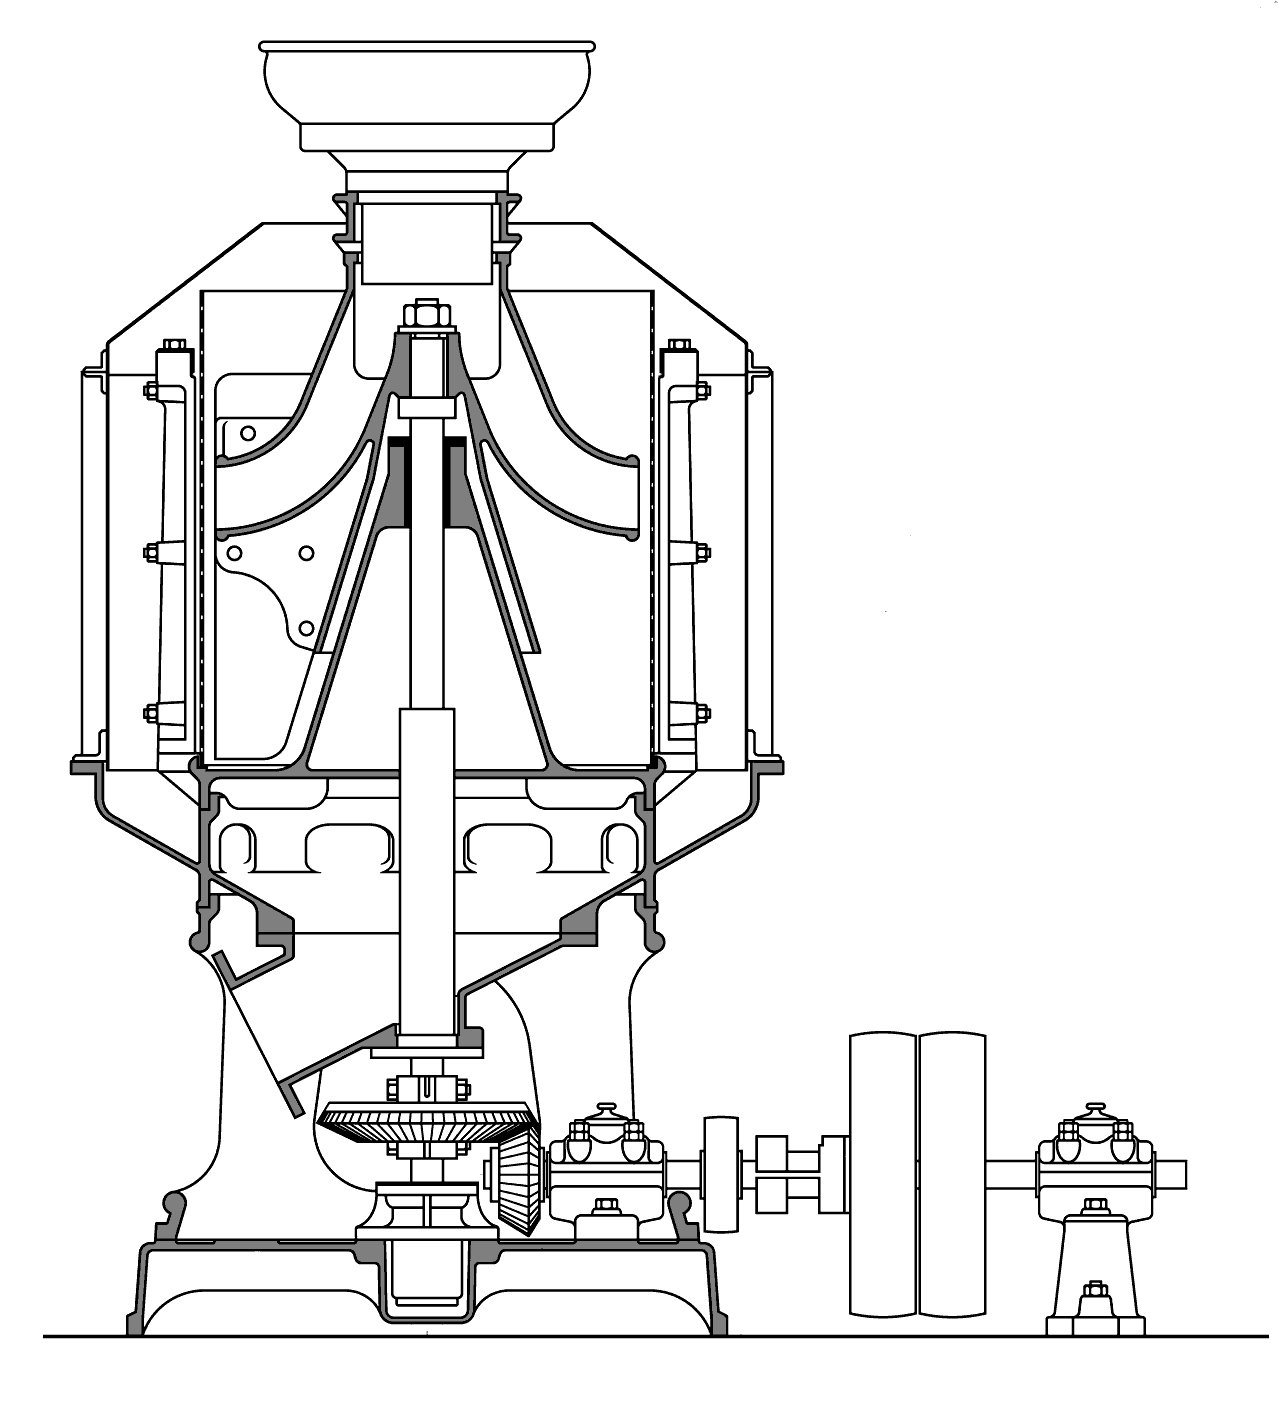 Cement Kilns Size Reduction And Grinding Roll Bearing Energy Saving Ball Mill Diagram Fls Trix Separator